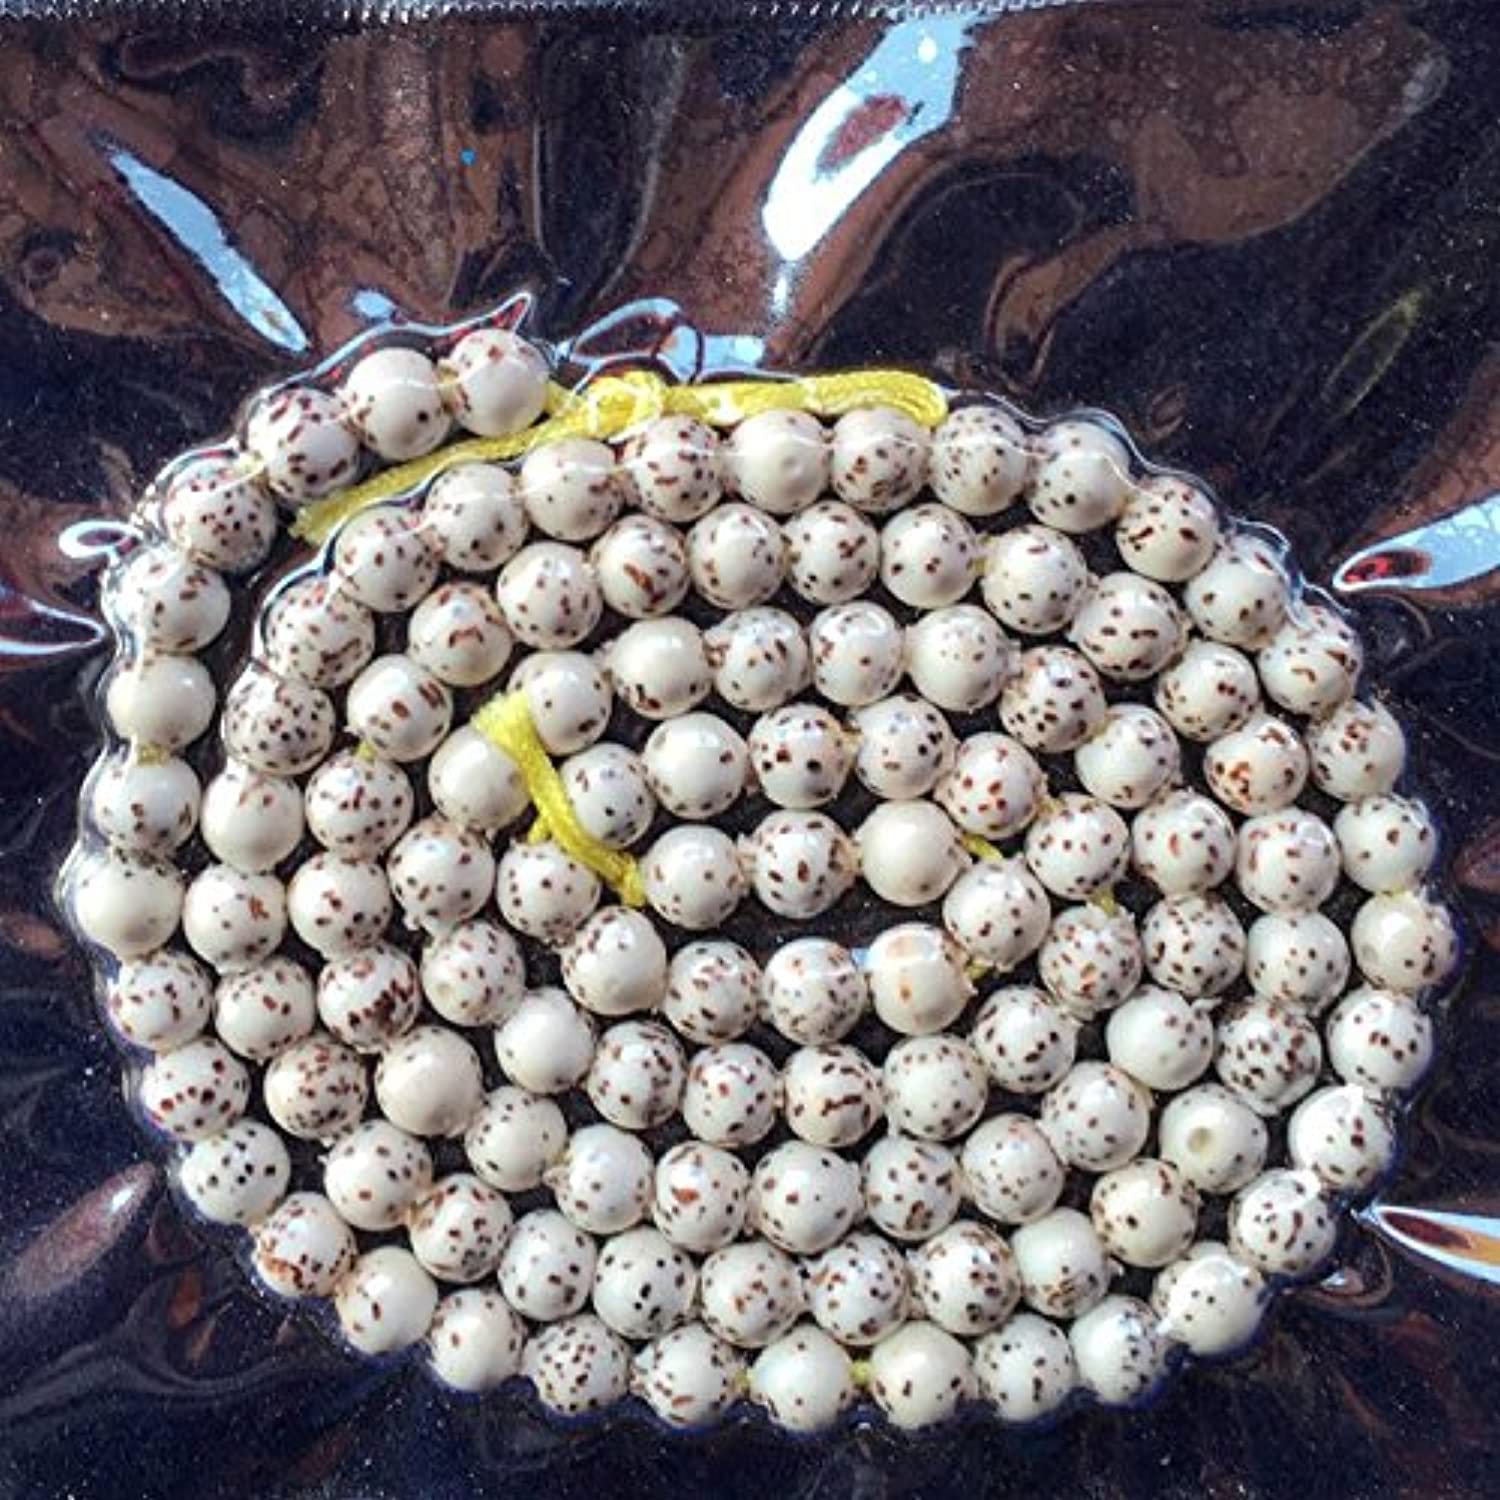 I 5 Xingyue Pu Tizi Ball high Density Wool-Month Feeding Dry Grinding Beads String Necklace Pendant Scratch cis Element 108 Beads